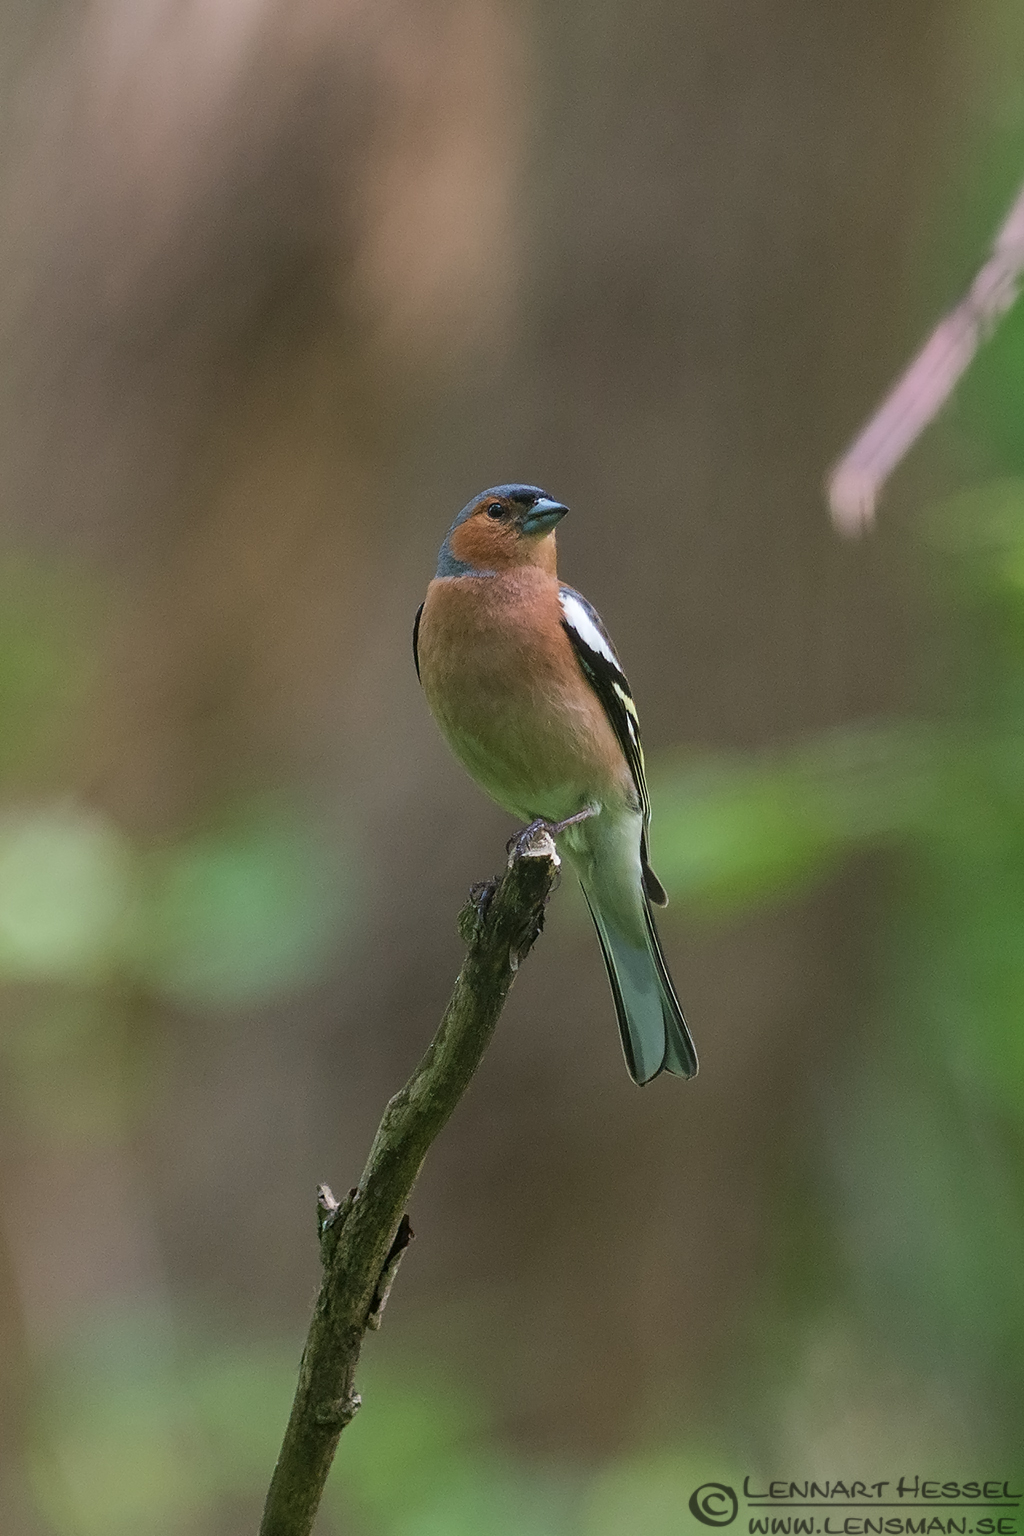 Chaffinch at Säveån, Gothenburg